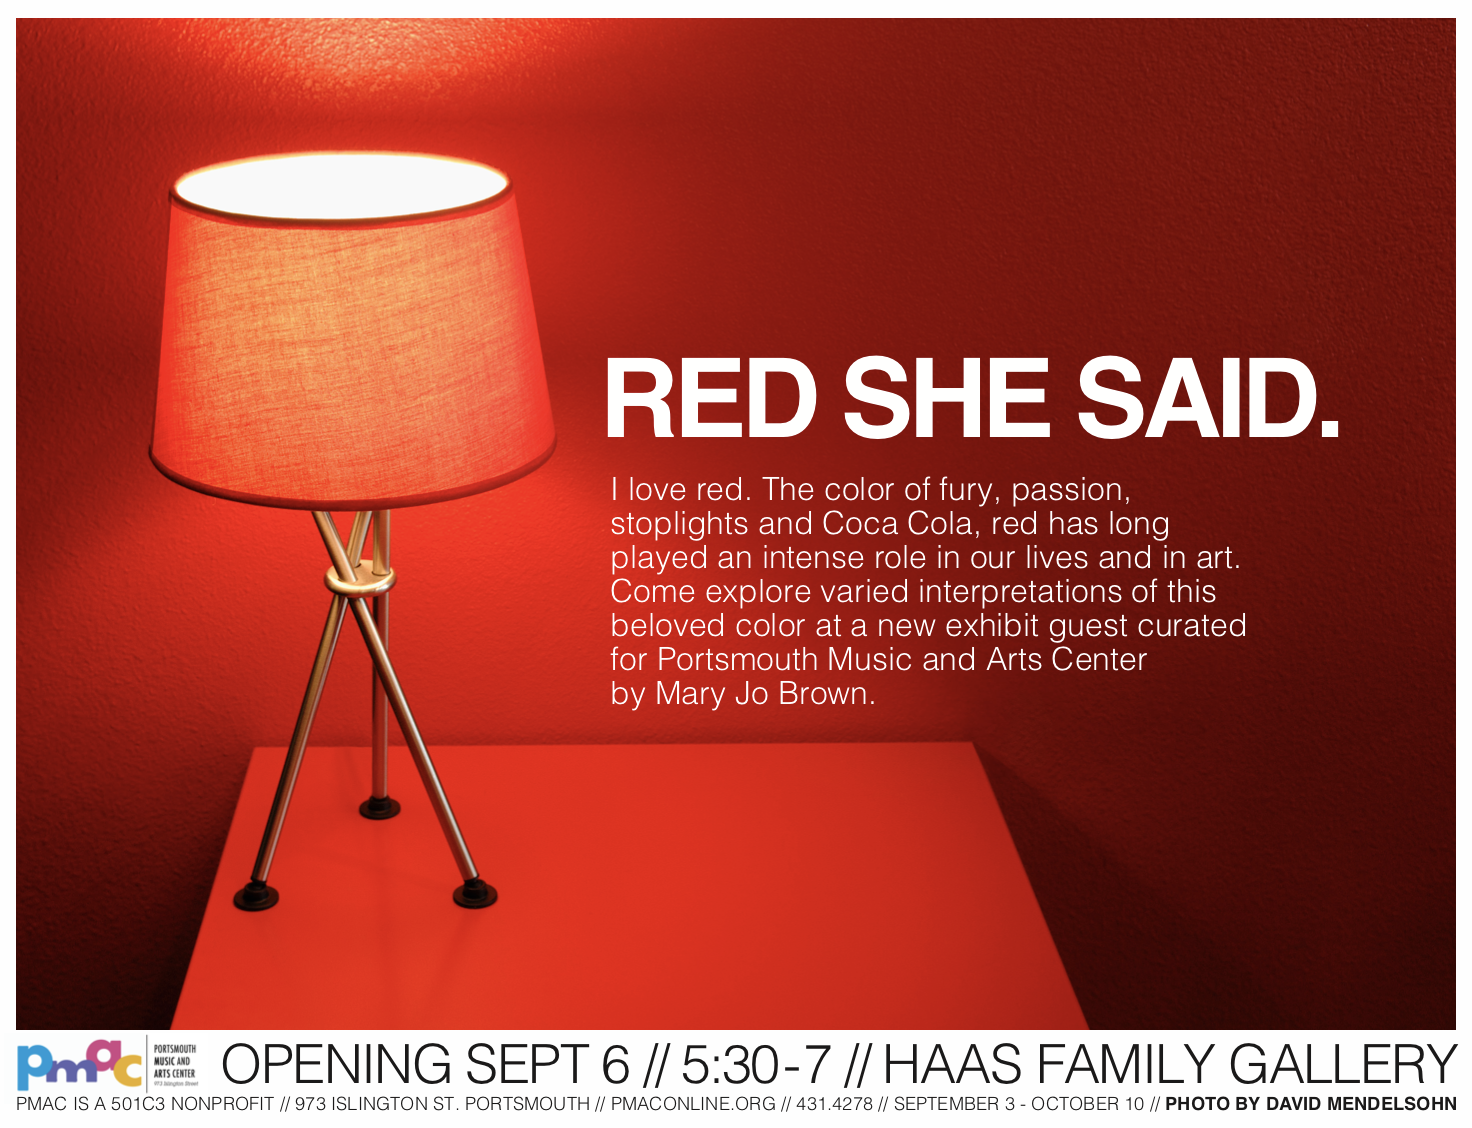 Red She Said - event poster by PMAC